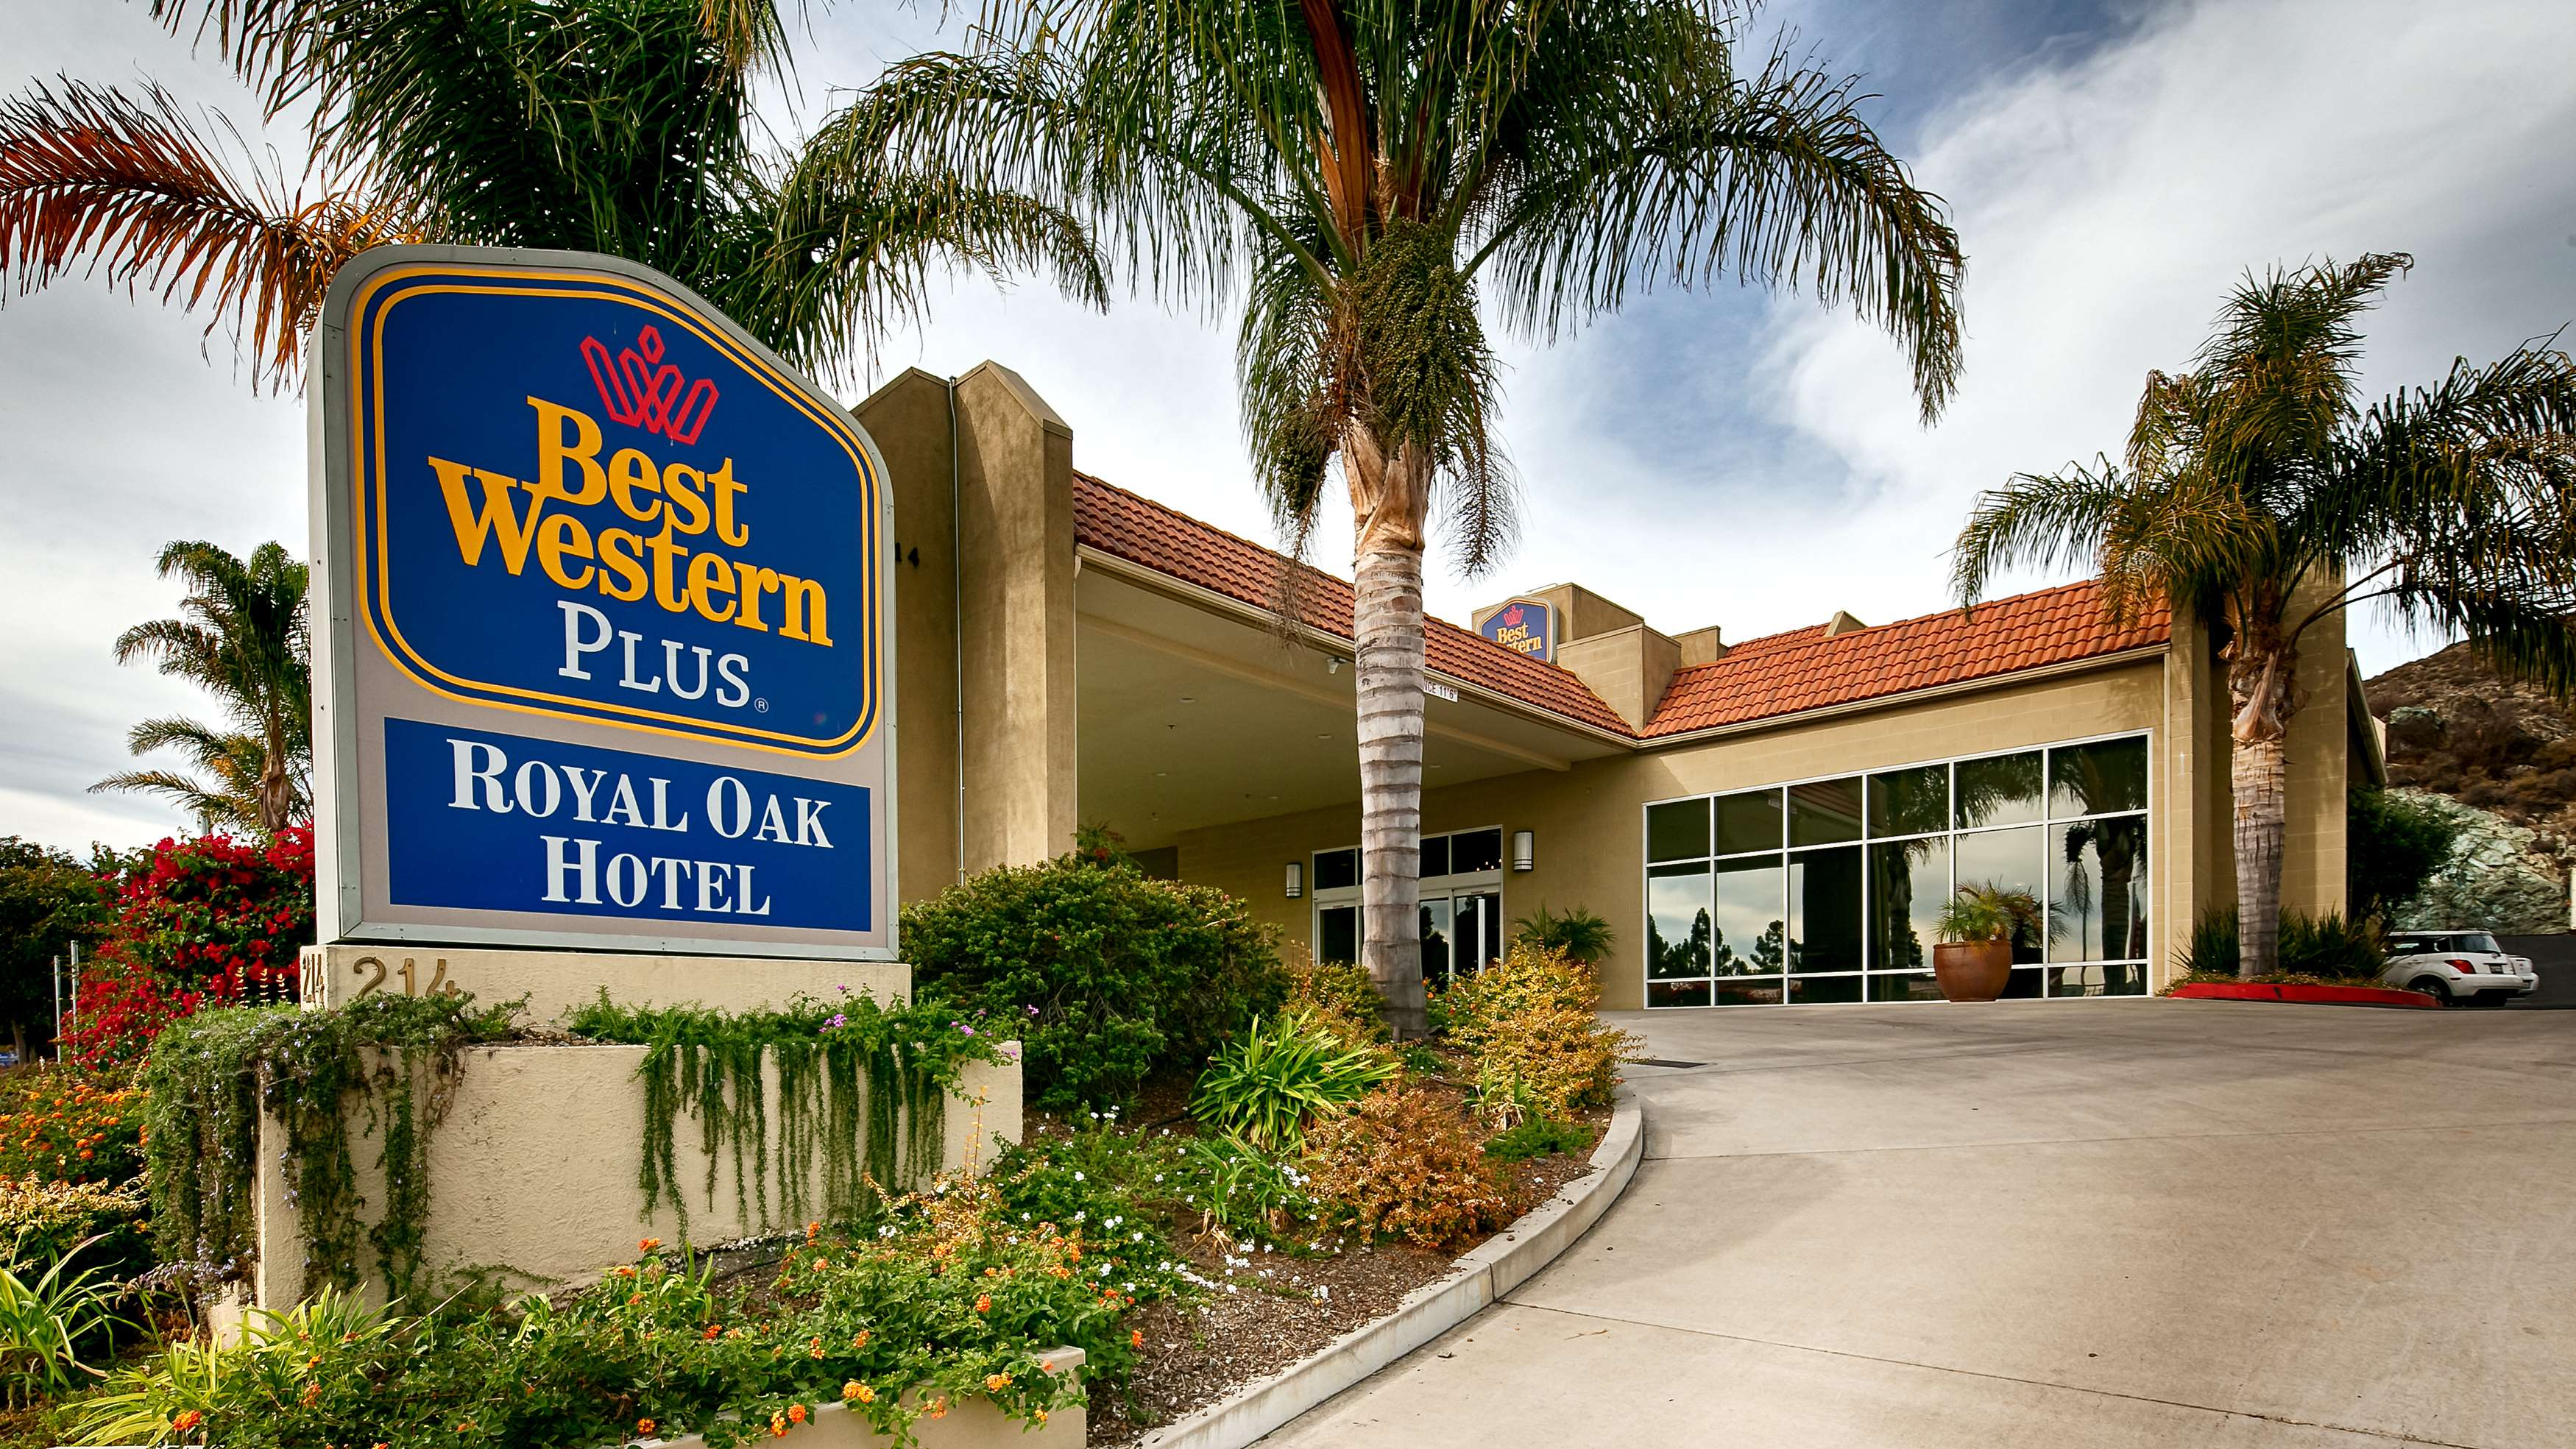 best western plus royal oak hotel san luis obispo ca company profile. Black Bedroom Furniture Sets. Home Design Ideas